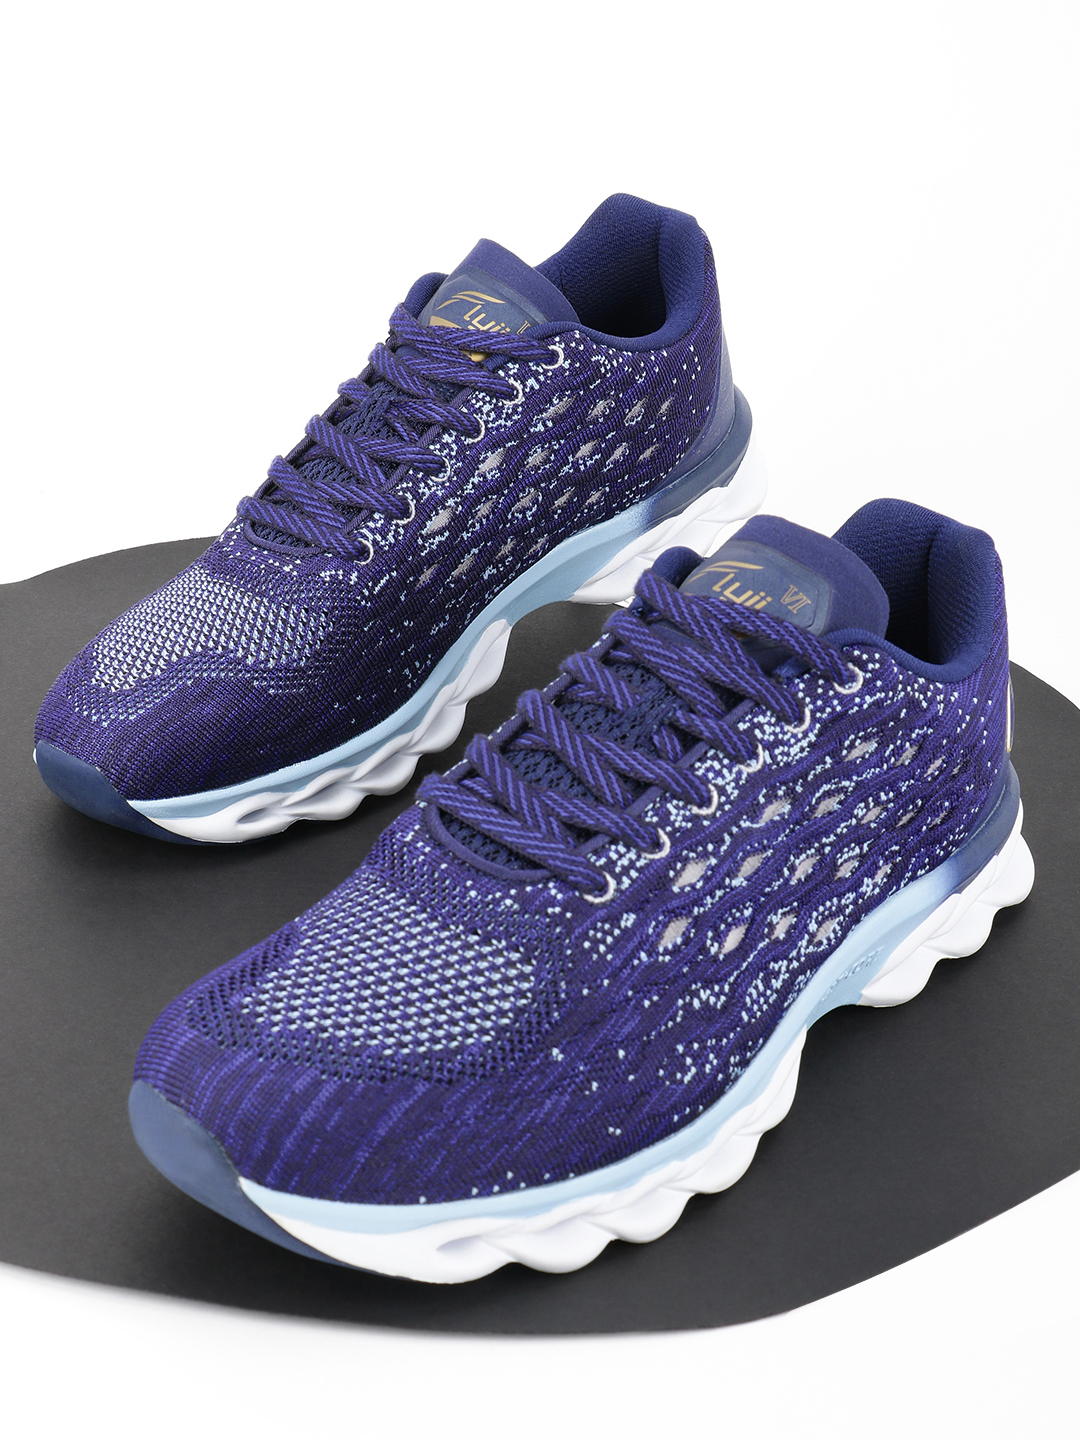 Peak Blue Knit Panelled Running Shoes 1